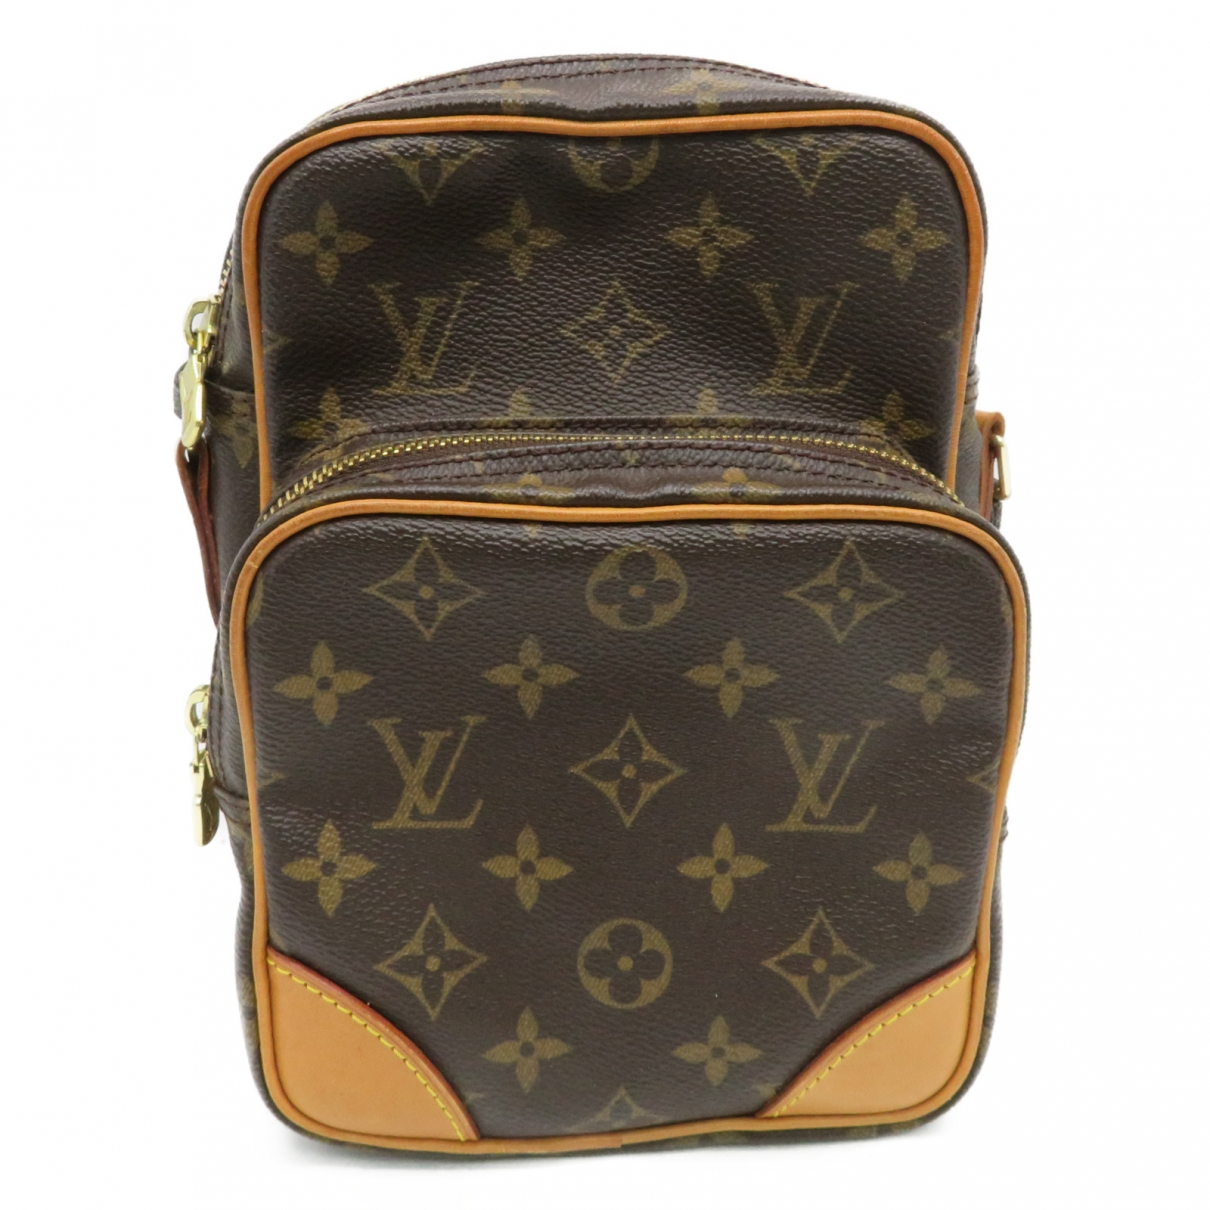 Louis Vuitton - Sac a main Amazon pour femme en toile - marron